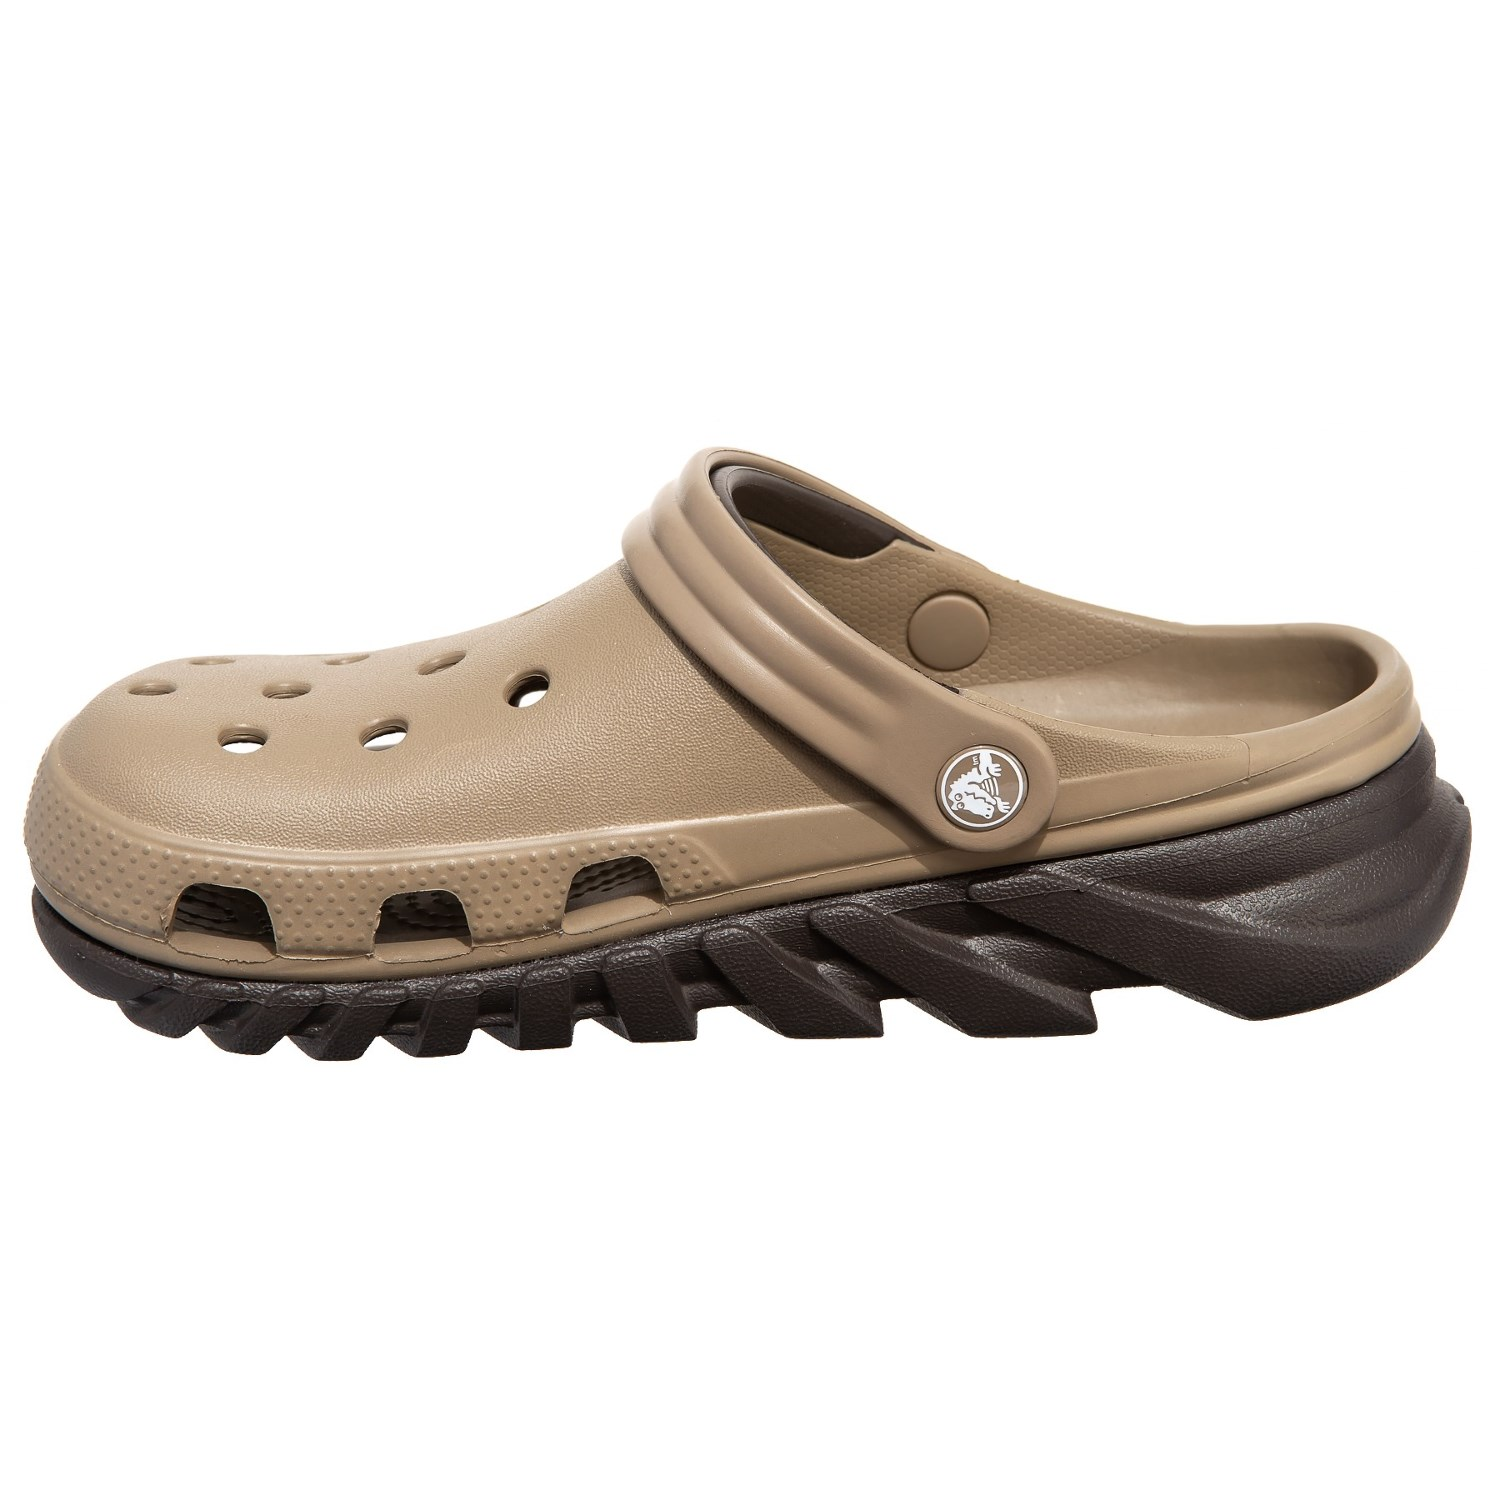 47ca4dccb8a2 Crocs Duet Max Clogs (For Men) - Save 57%